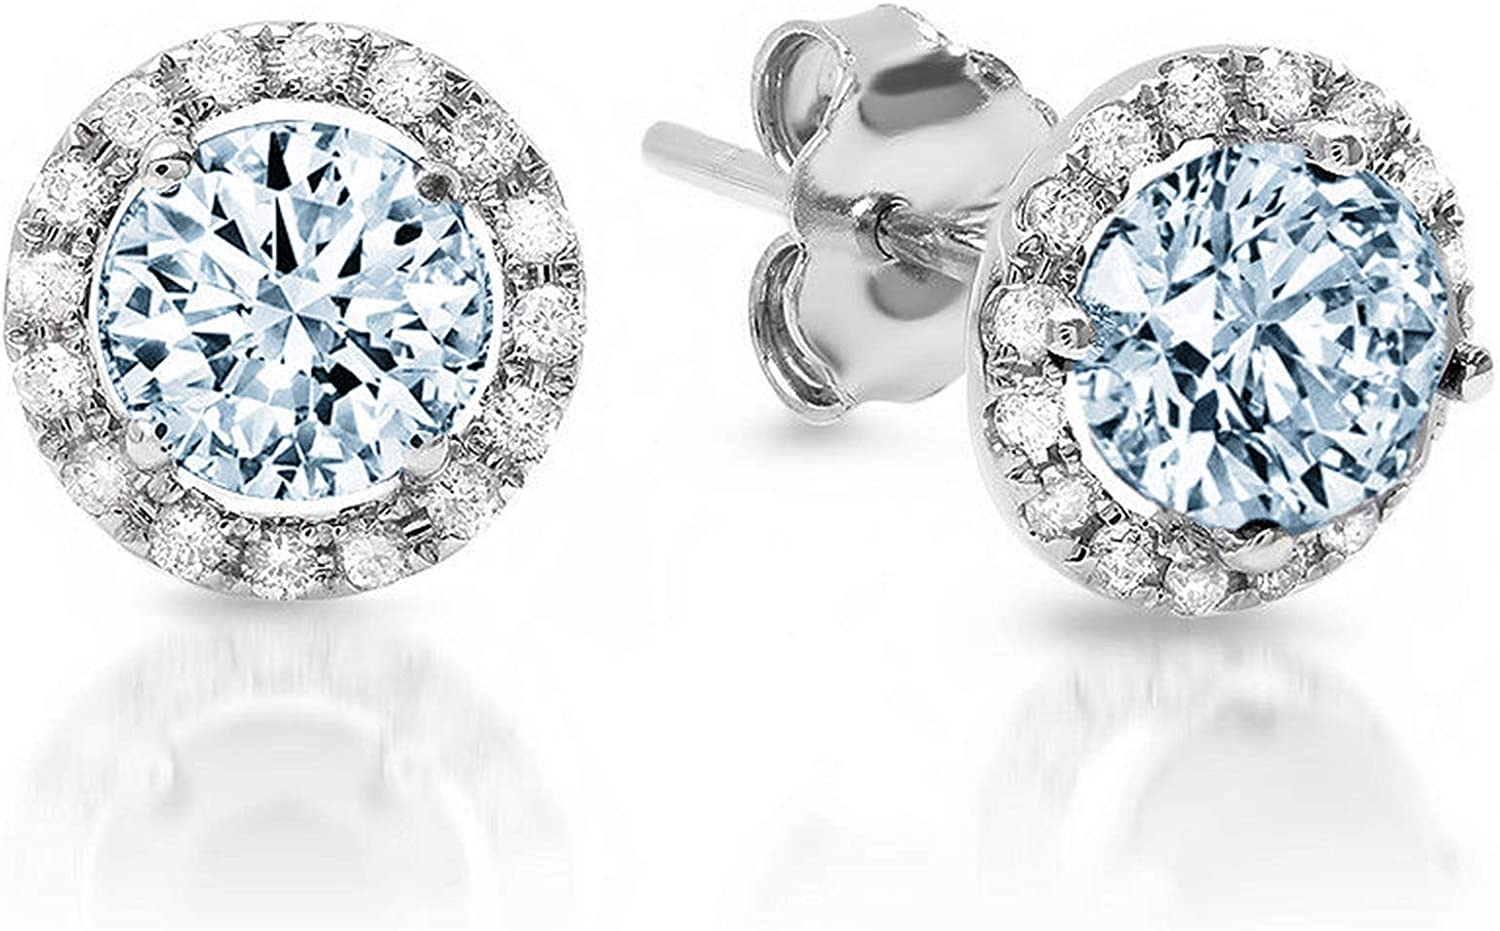 Clara Pucci 1.60 ct Brilliant Round Cut Halo Solitaire VVS1 Flawless Natural Sky Blue Topaz Gemstone Pair of Solitaire Stud Screw Back Earrings Solid 18K White Gold